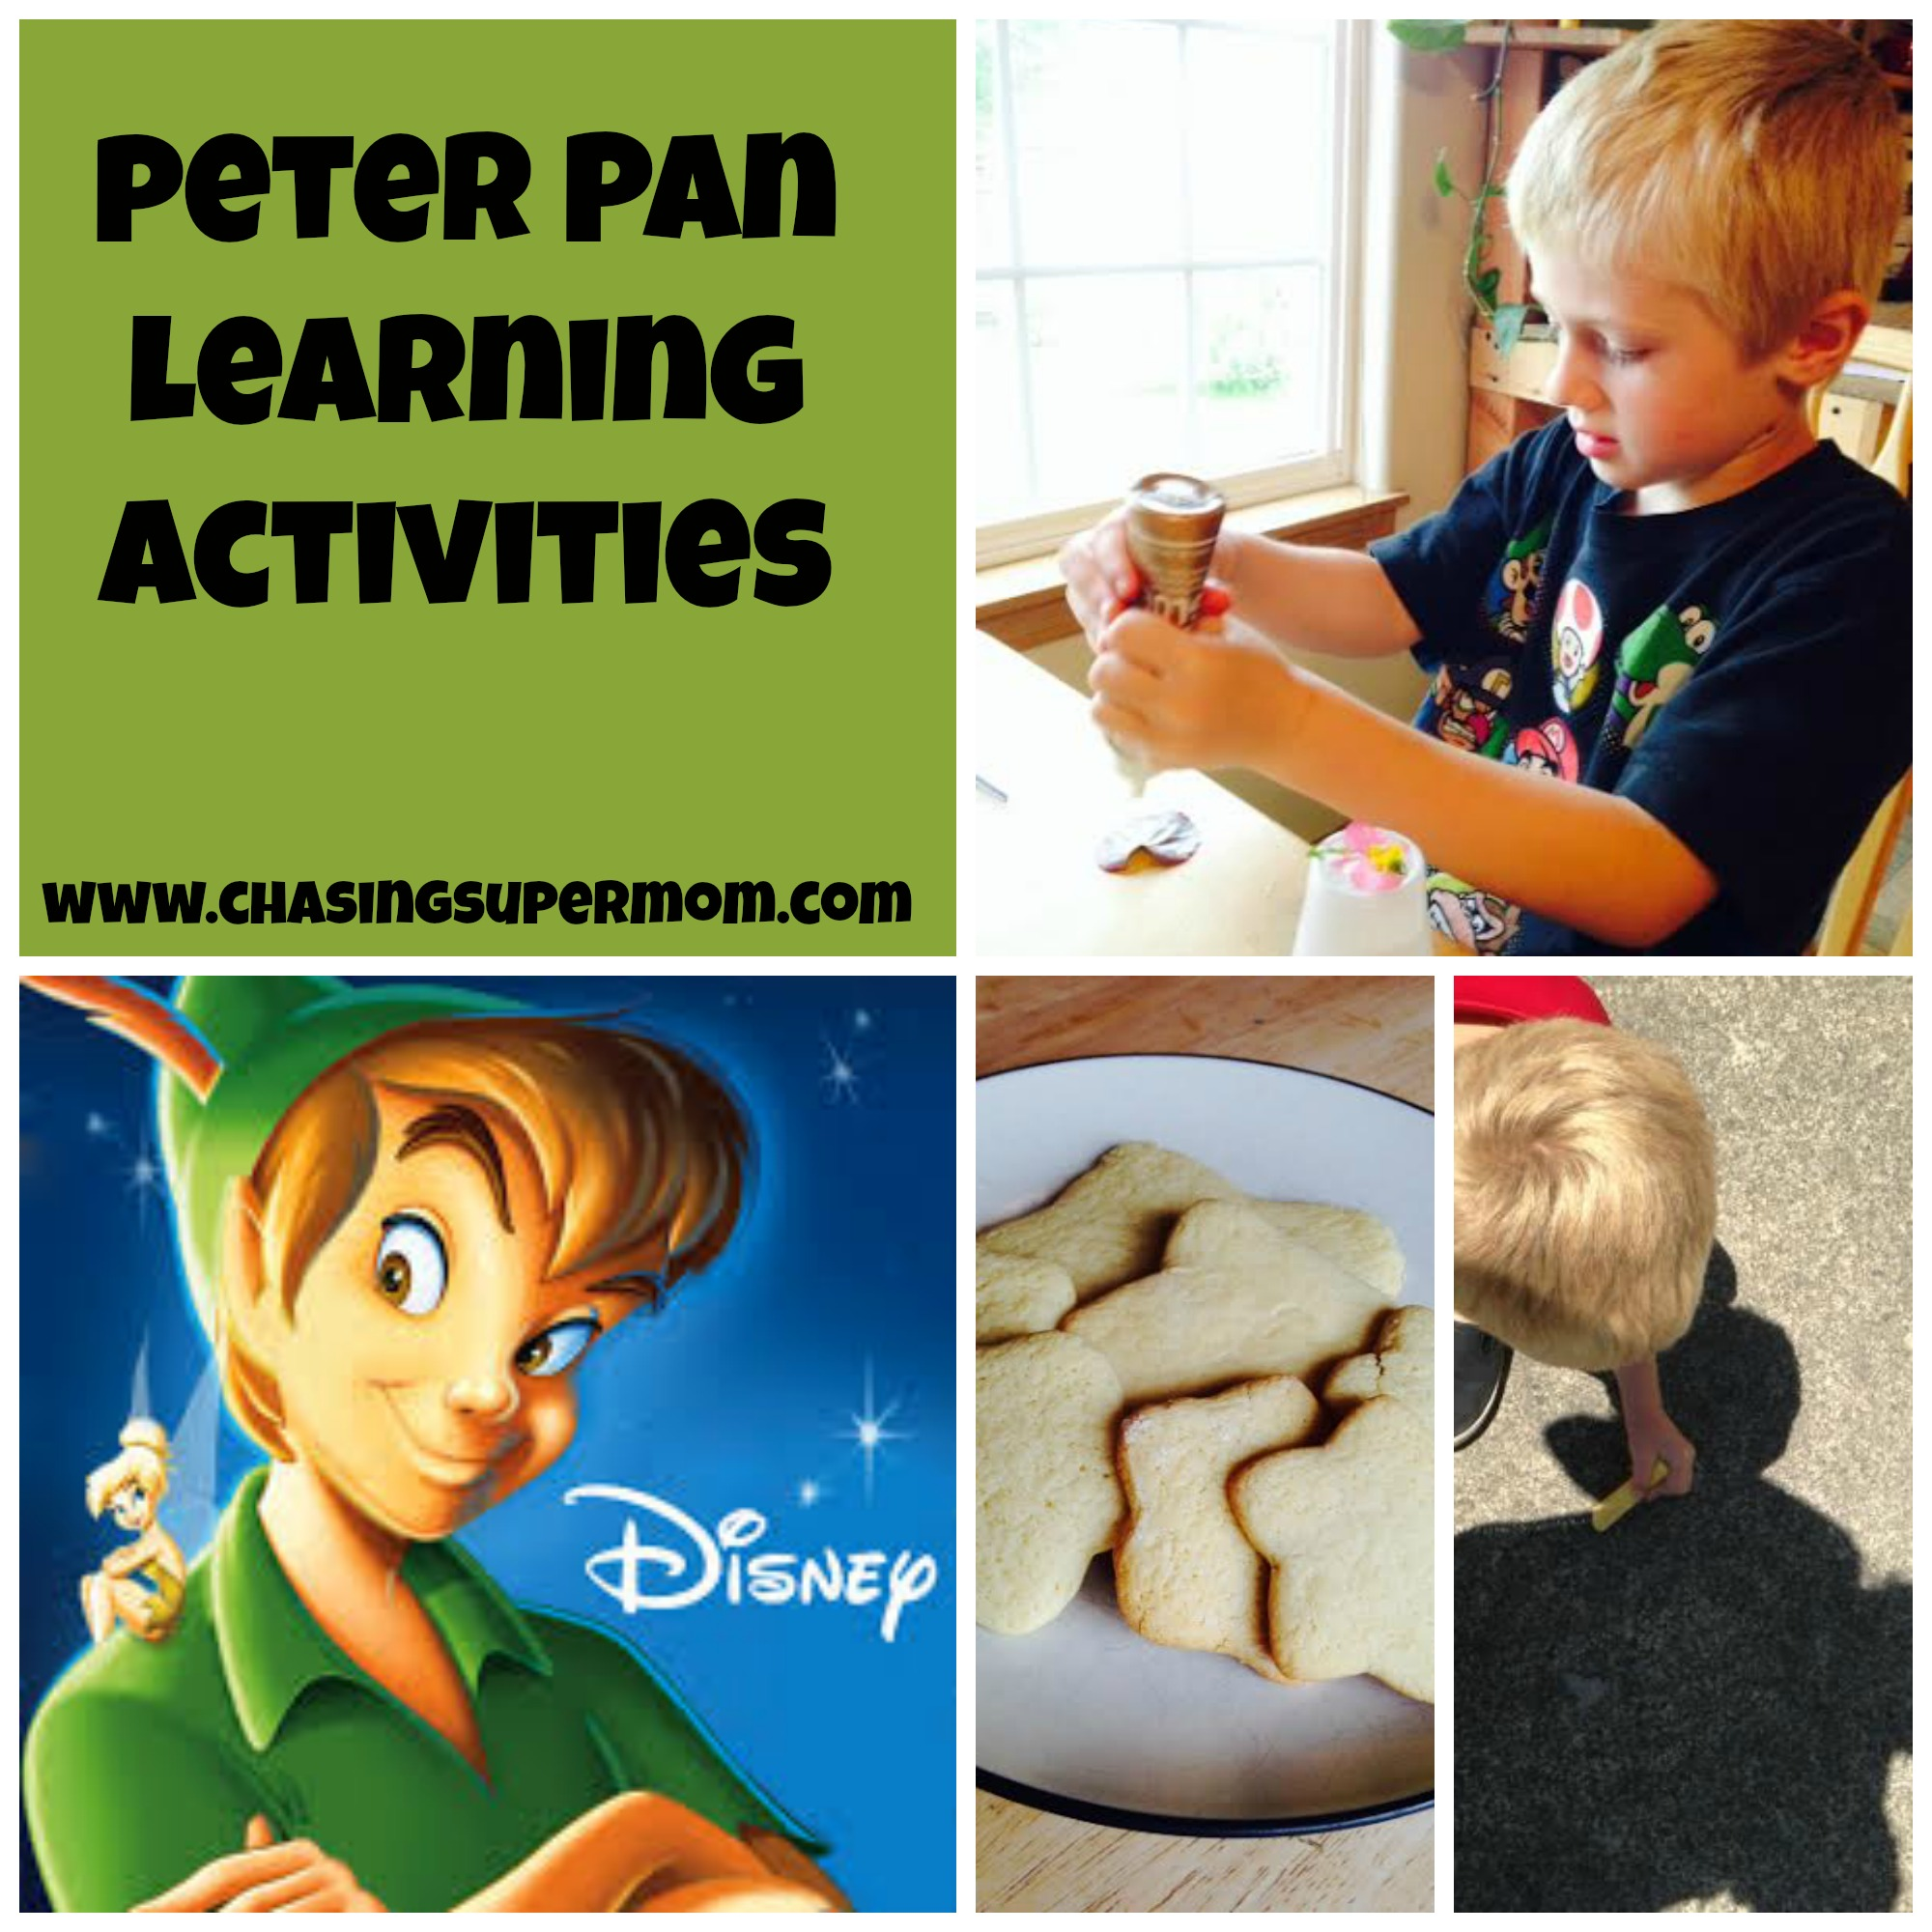 Peter Pan Learning Activities